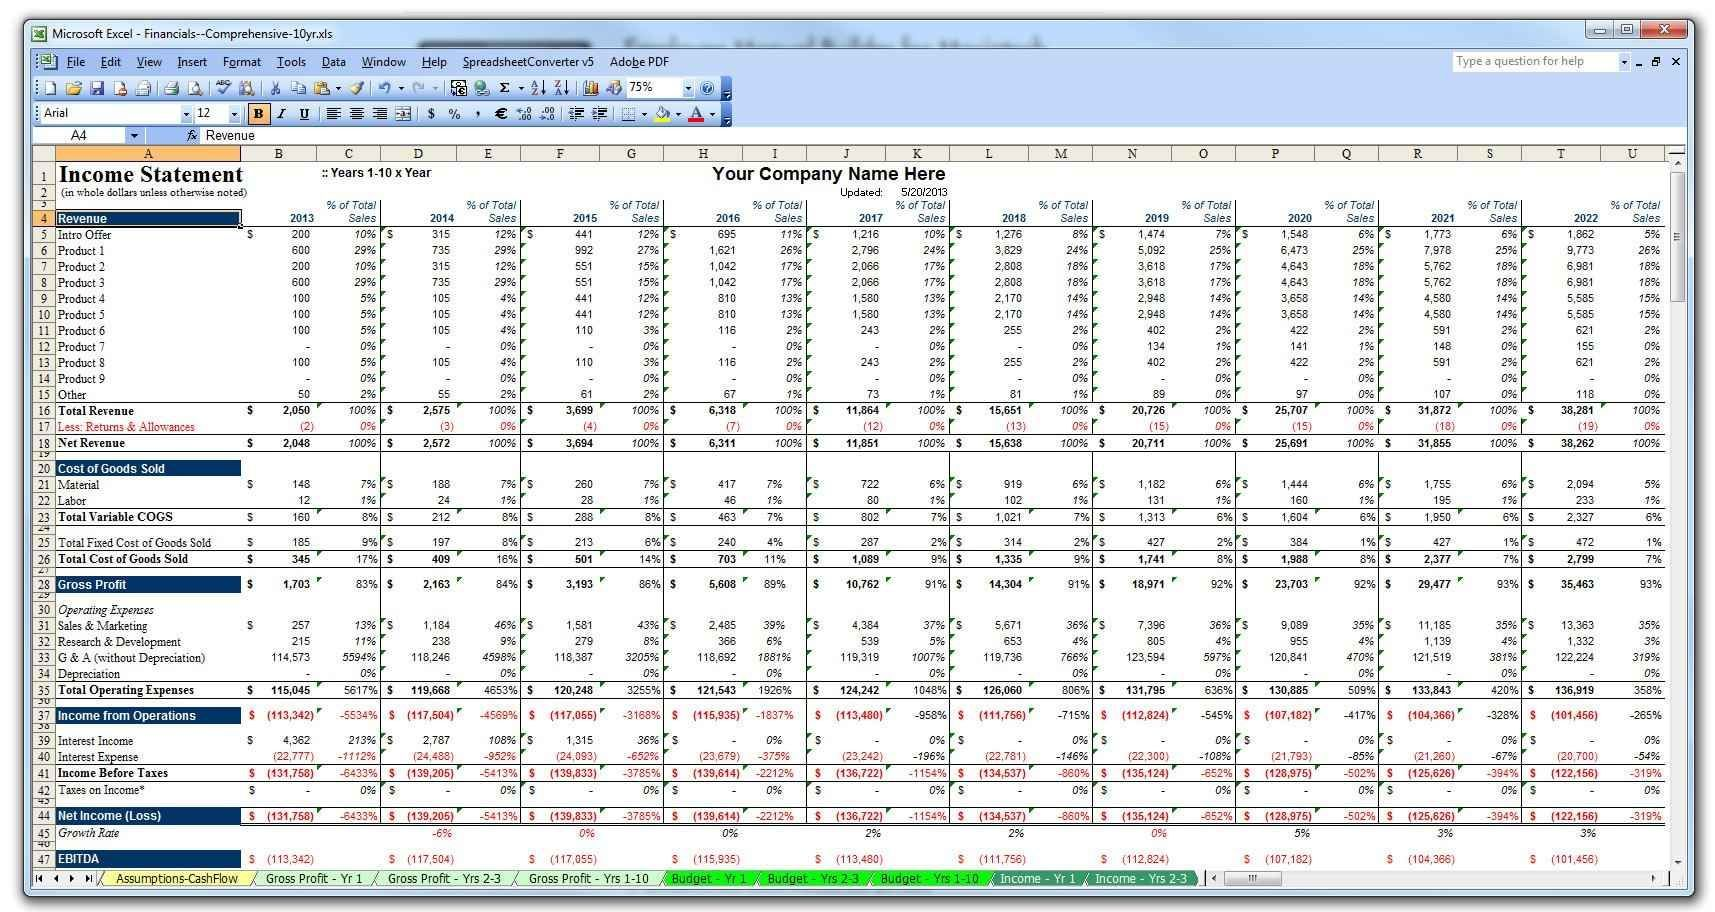 Free Expense Spreadsheet Template Excel Medical Expenses Pertaining To Excel Business Plan Template Free Financial Plan Template Startup Business Plan Template Personal financial plan template excel